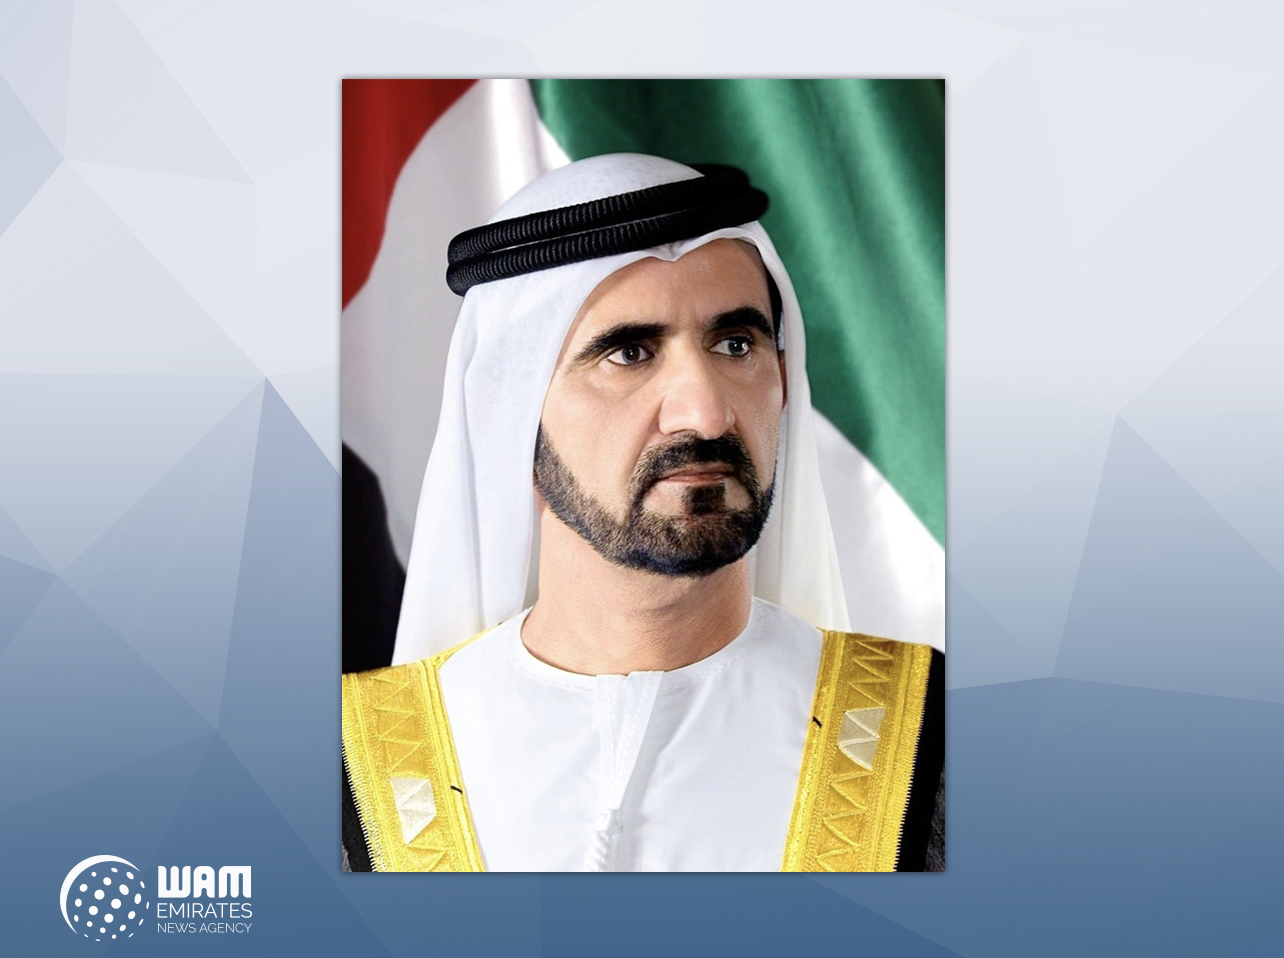 Mohammed bin Rashid announces new appointments in UAE government